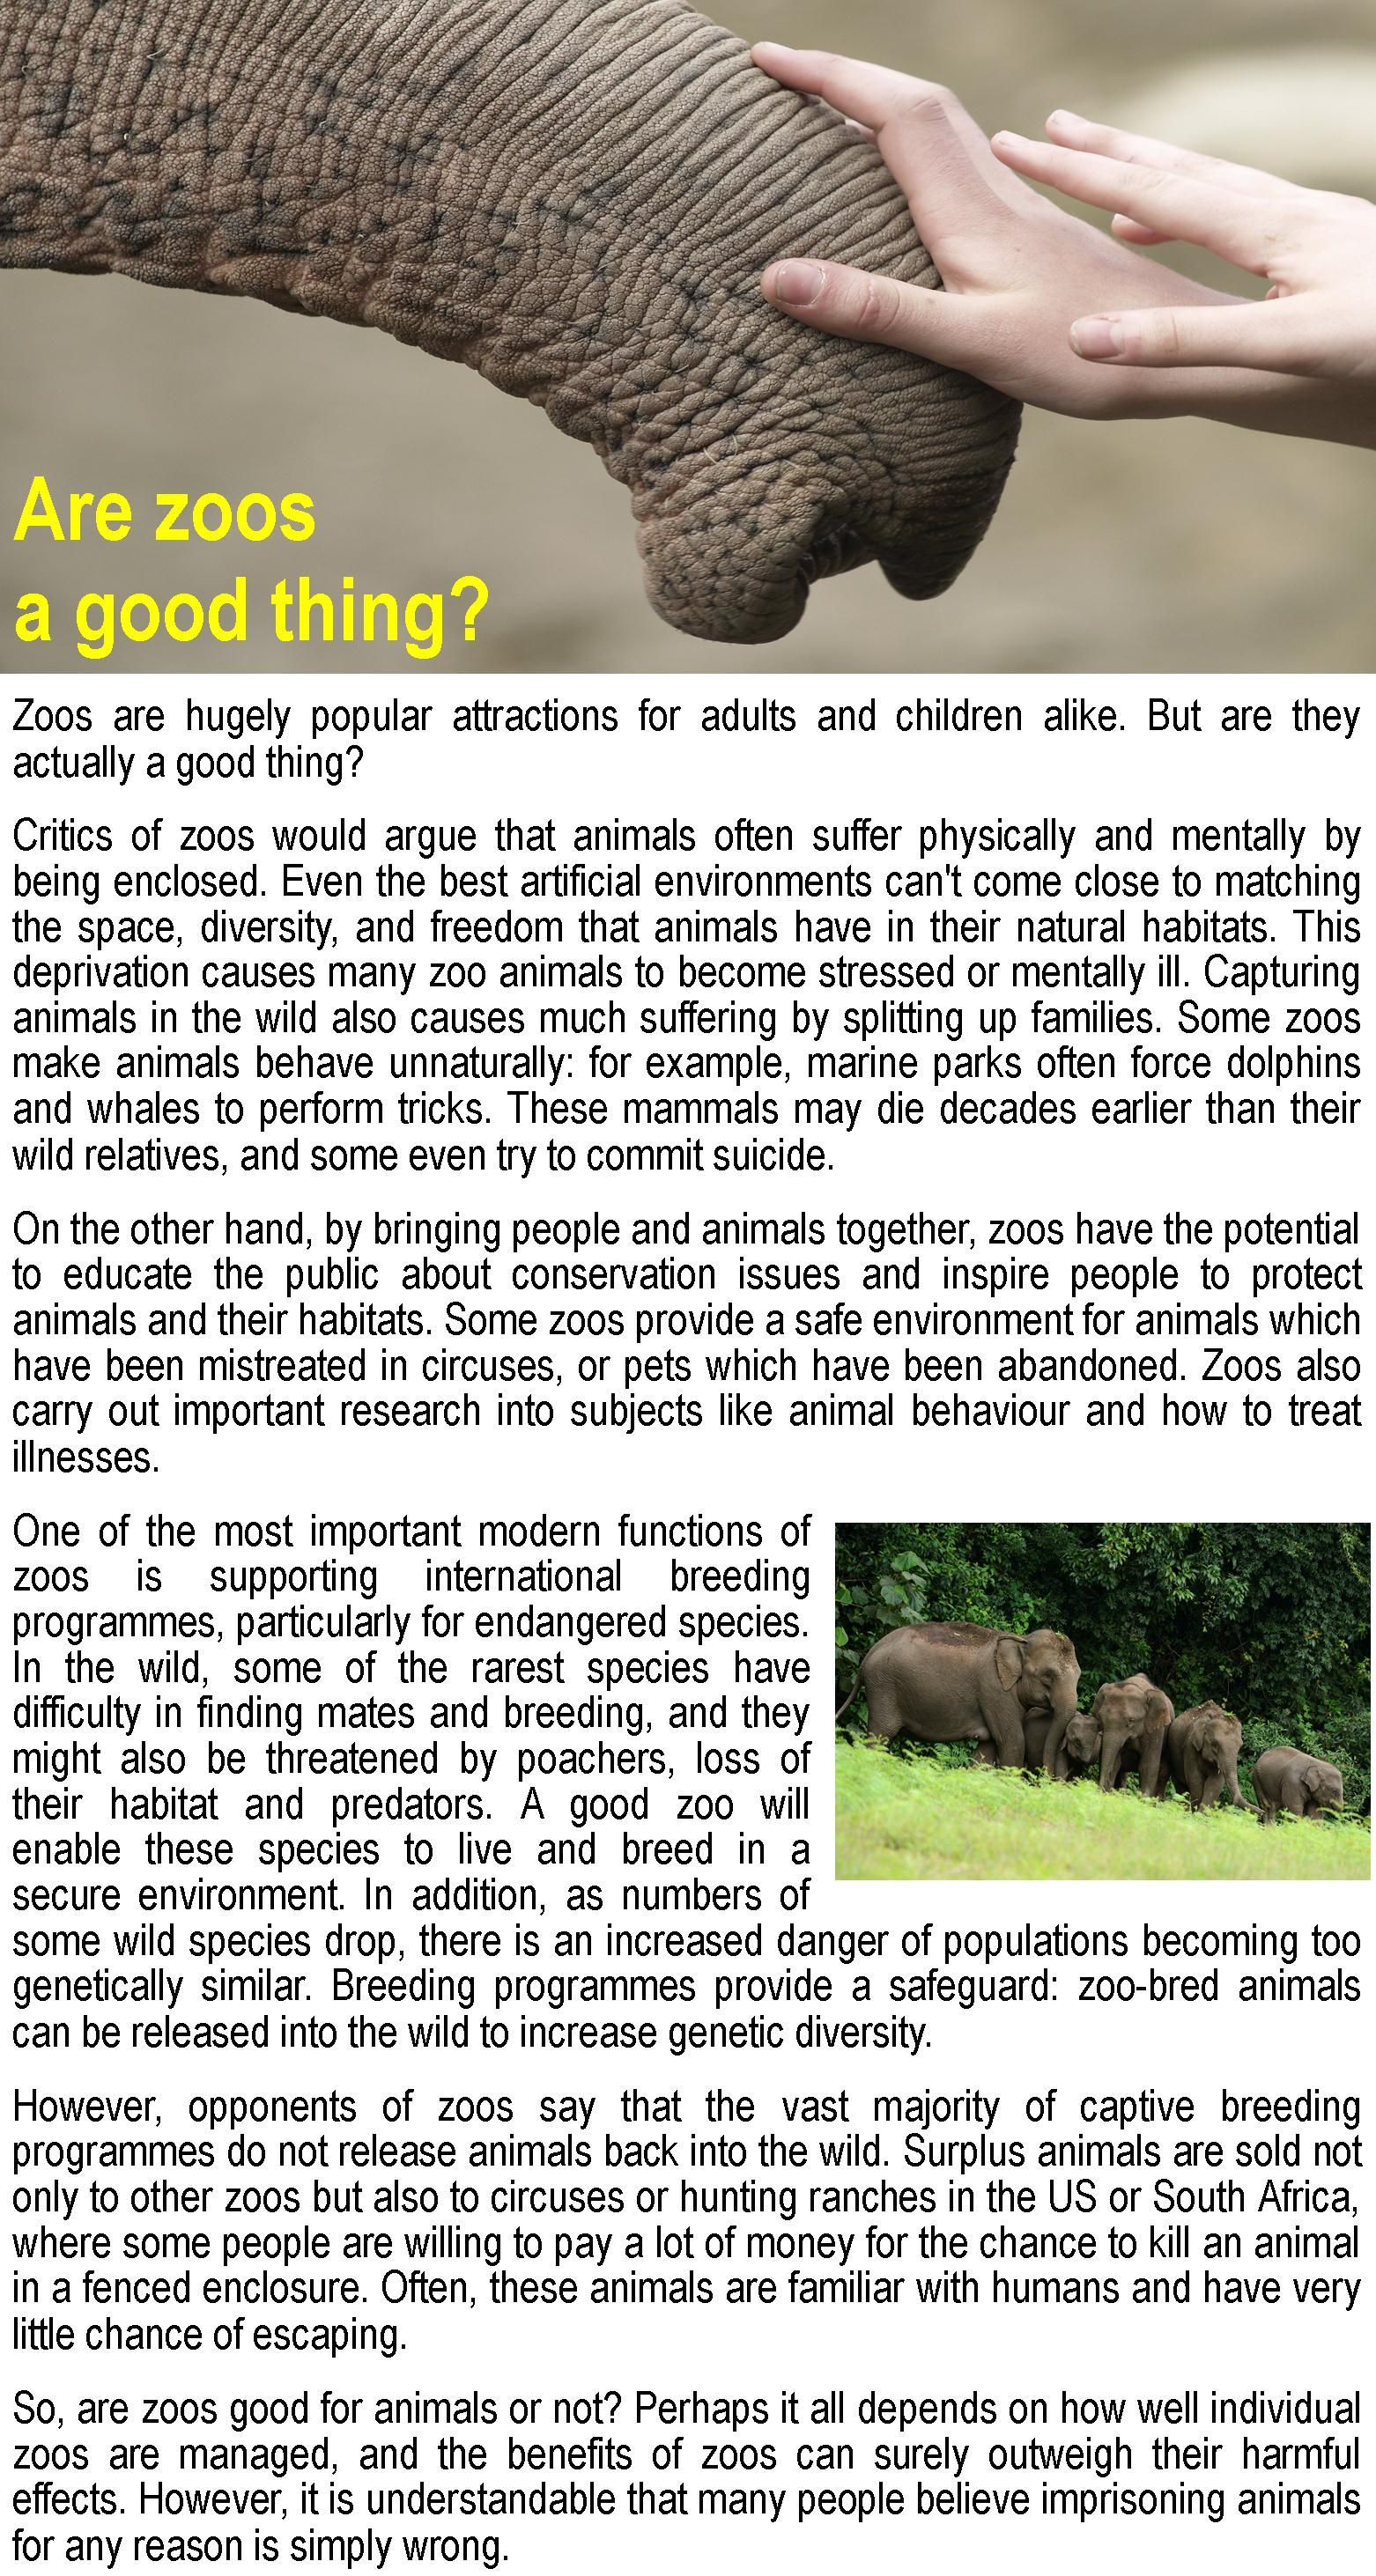 Are Zoos A Good Thing